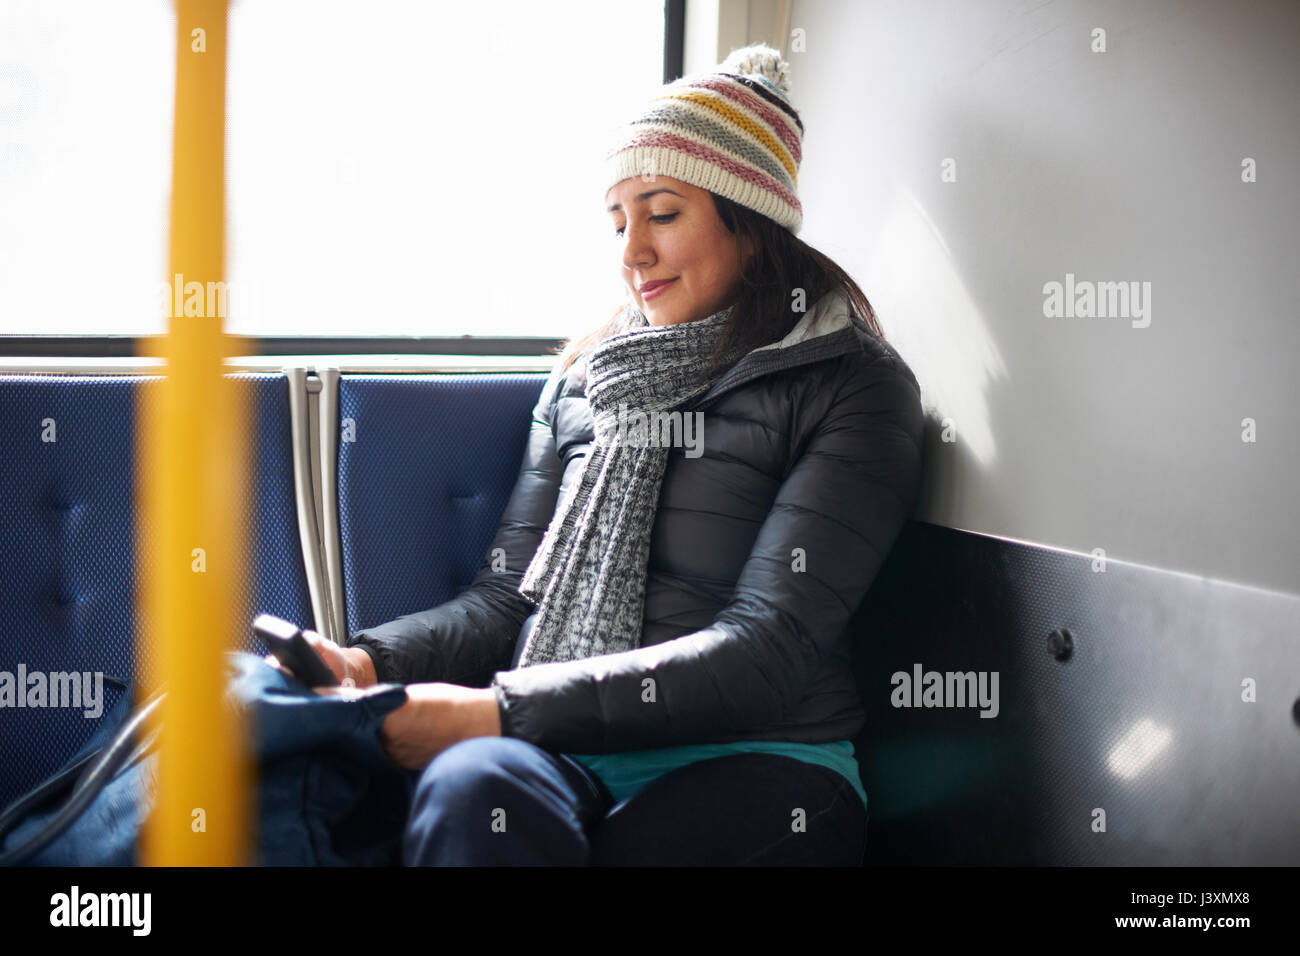 Woman travelling on bus looking at smartphone - Stock Image